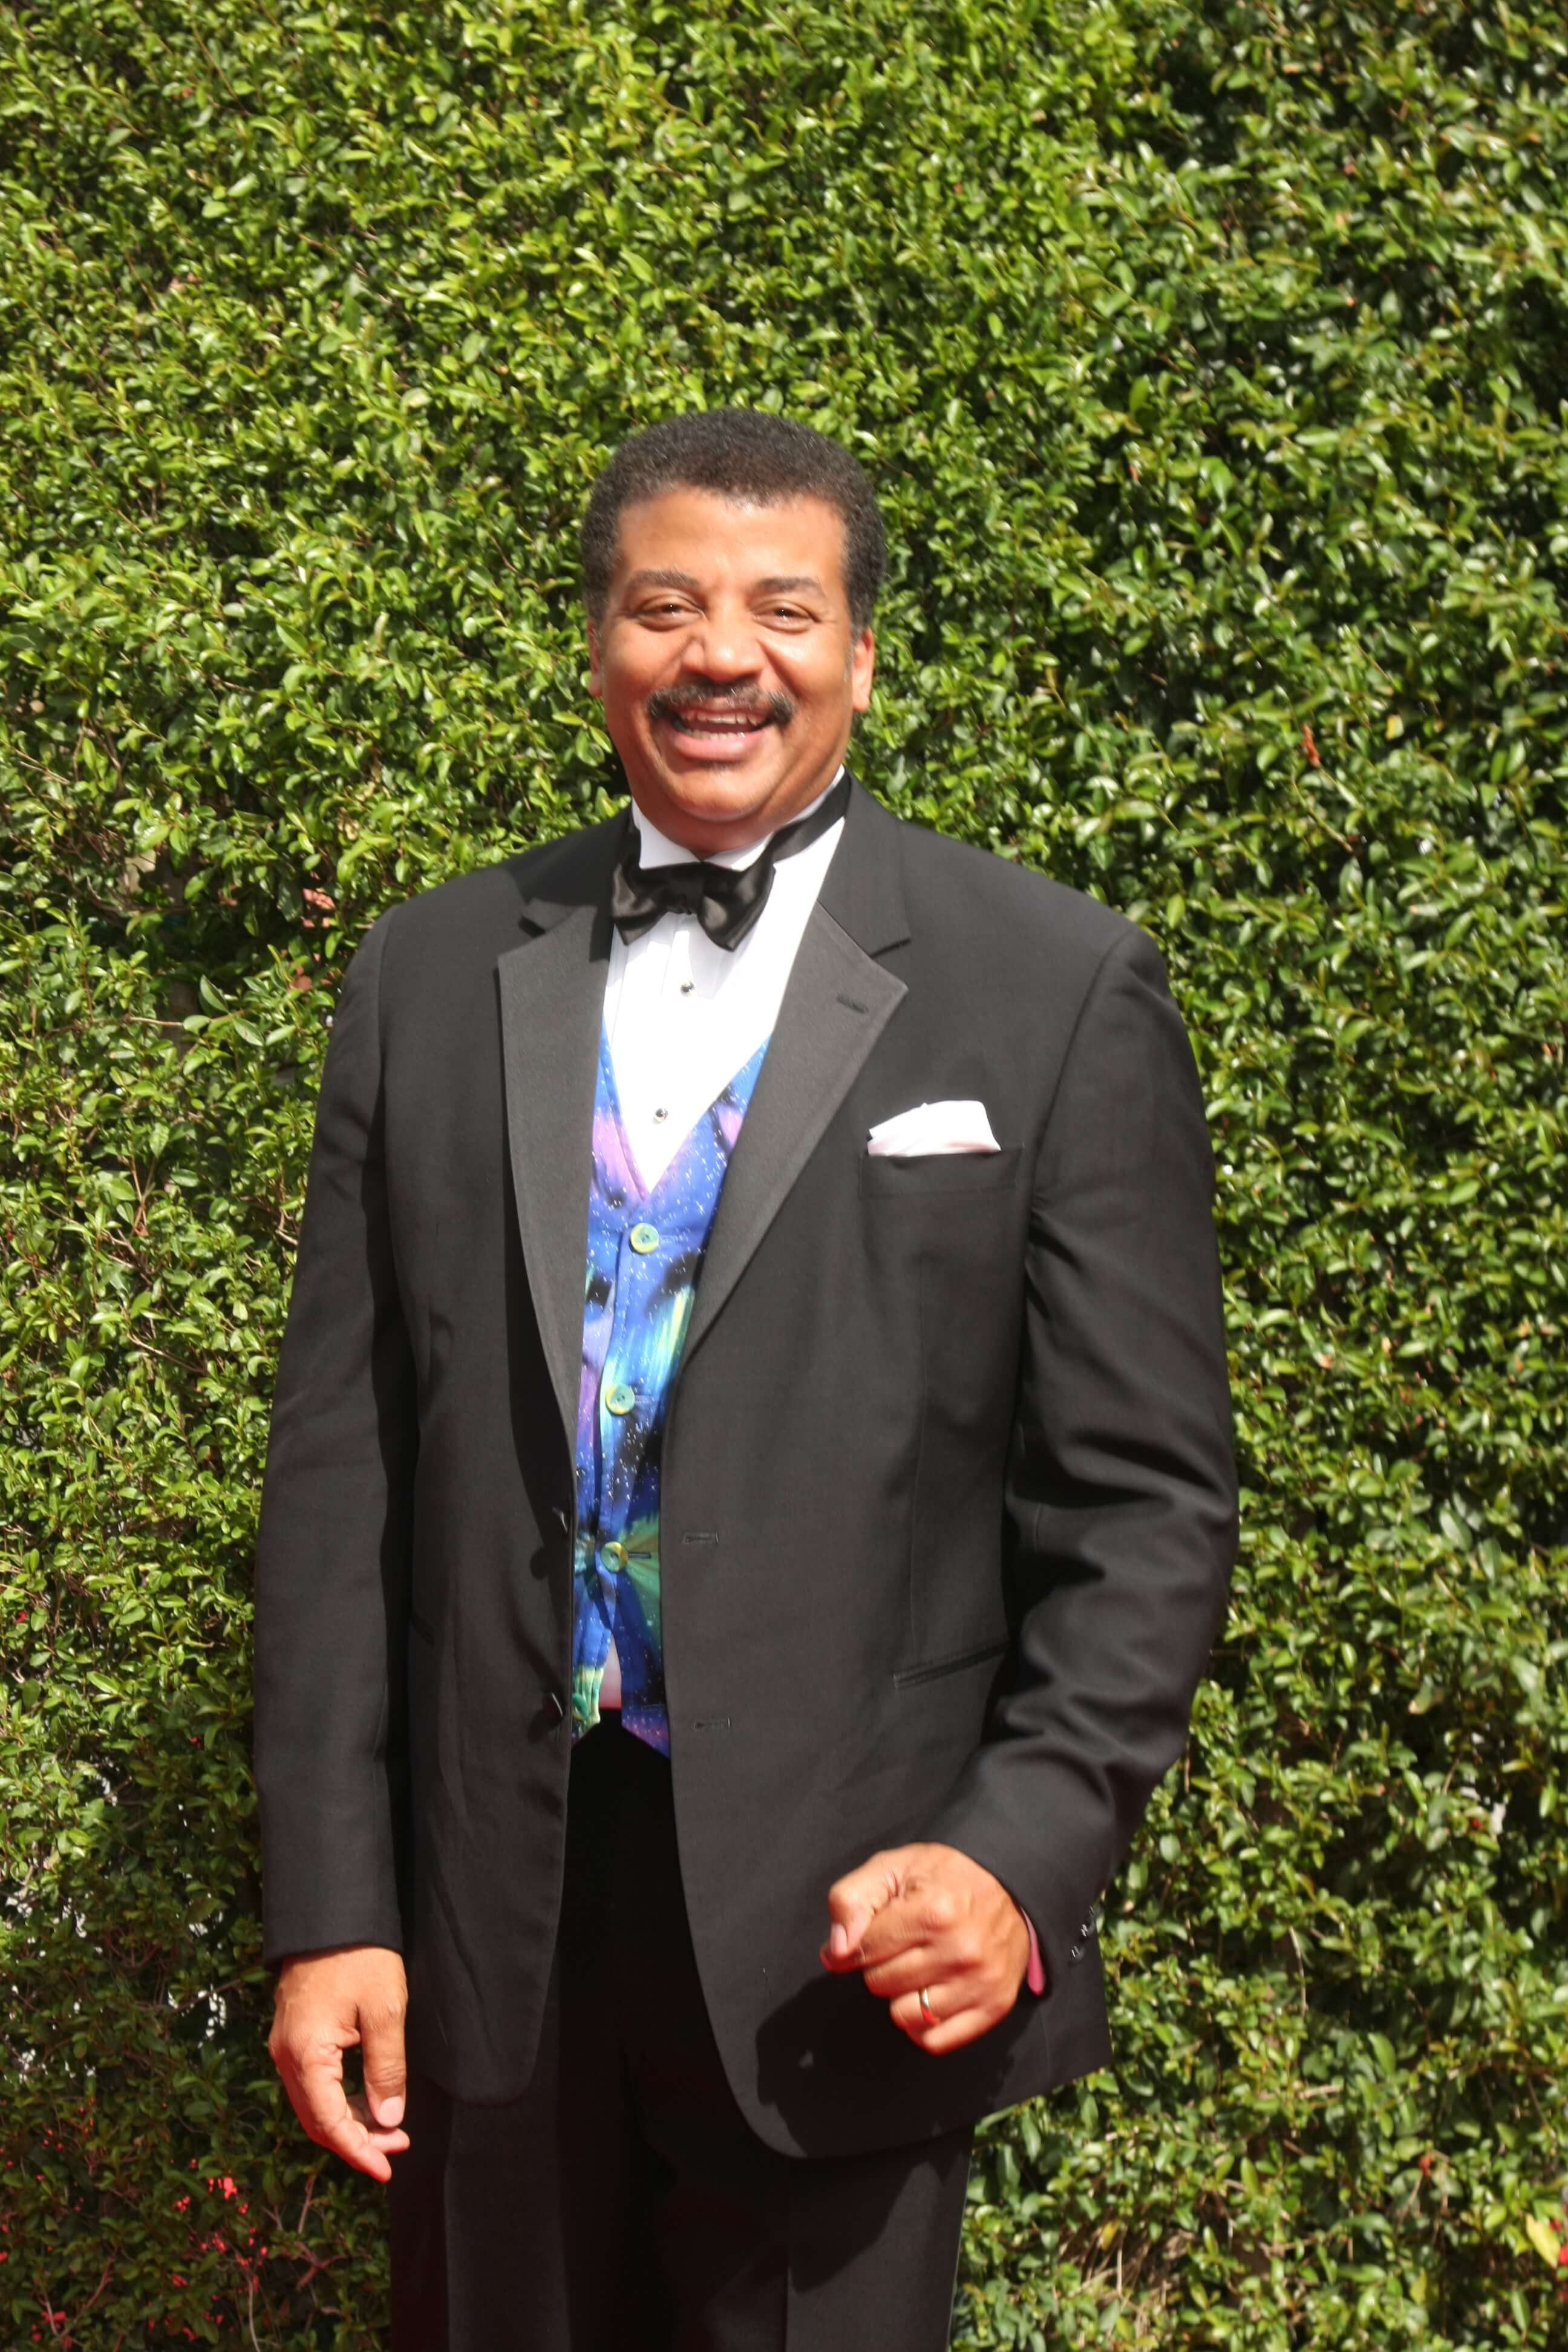 Neil deGrasse Tyson, Neil deGrasse Tyson in a suite., Neil deGrasse Tyson at an award show